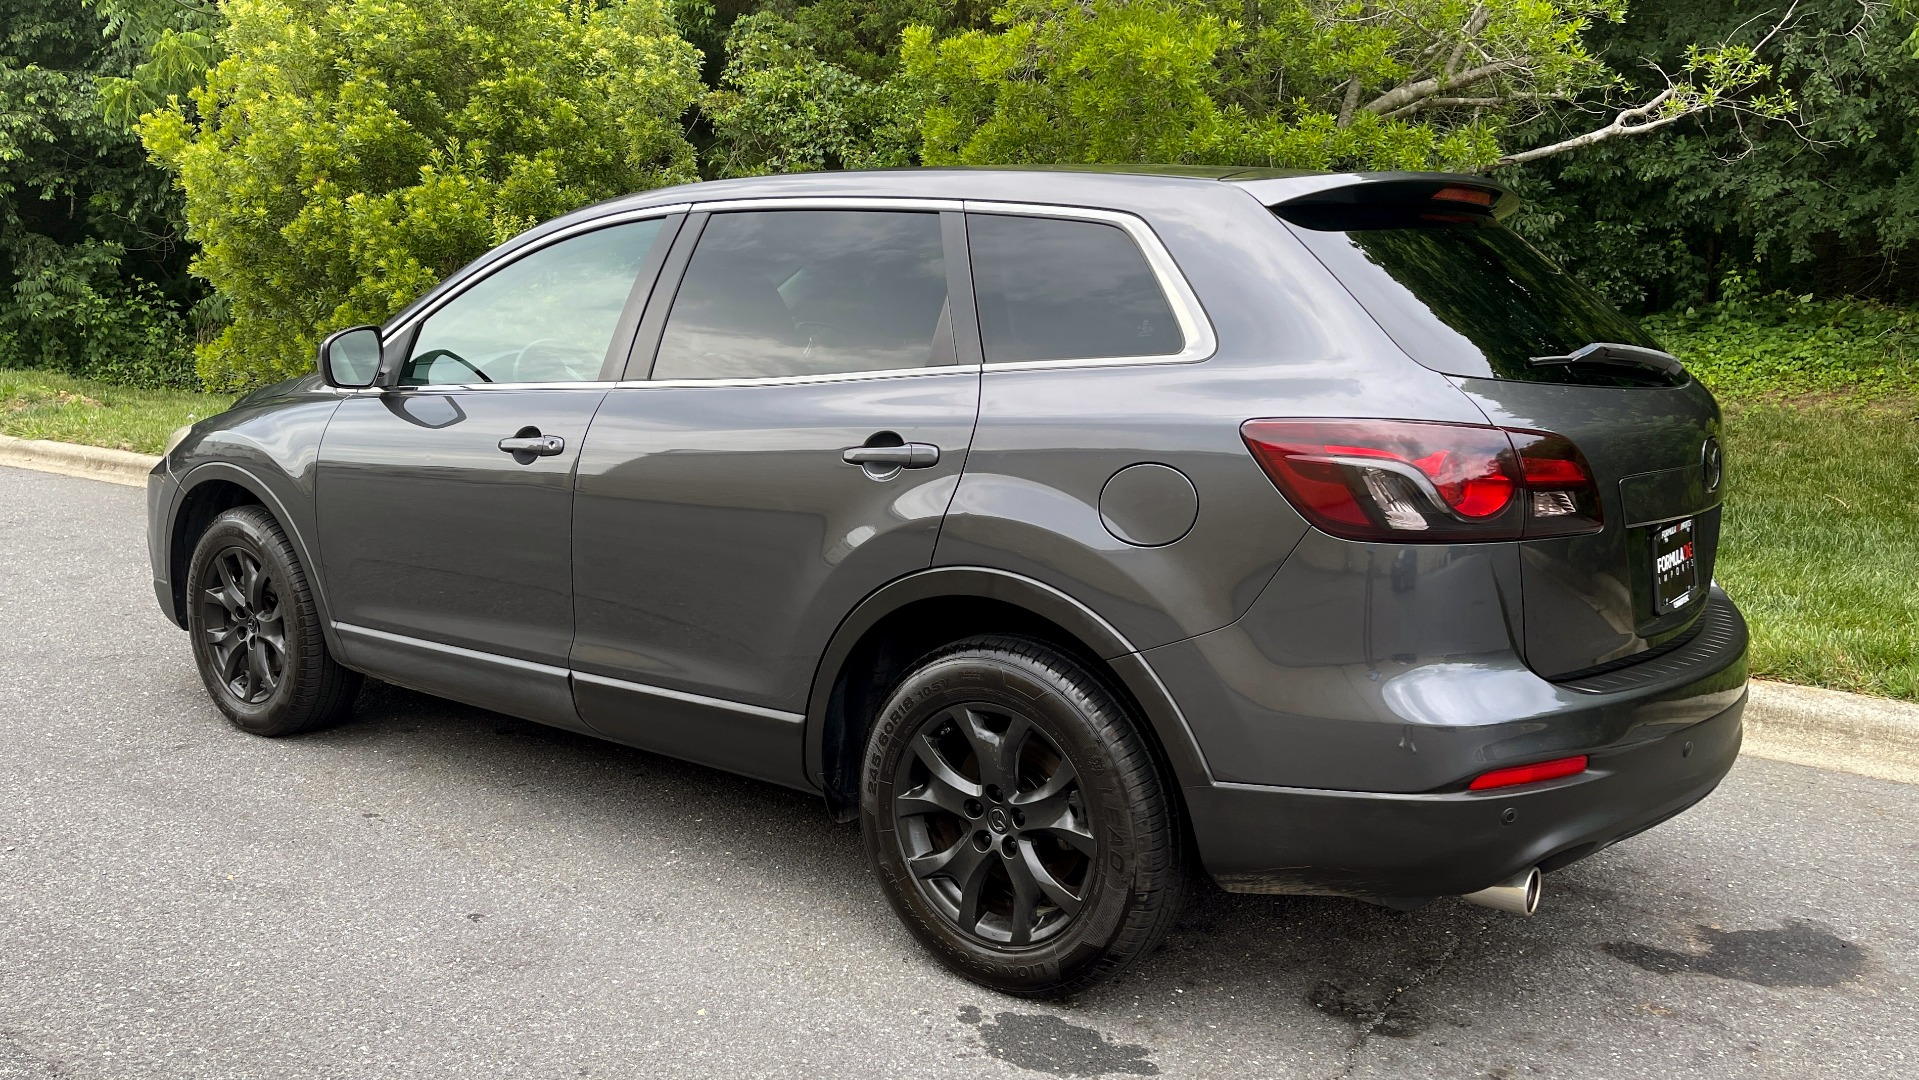 Used 2014 Mazda CX-9 TOURUNG / FWD / 3.7L V6 / 6-SPD AUTO / HTD STS / 3-ROW / REARVIEW for sale $14,995 at Formula Imports in Charlotte NC 28227 4